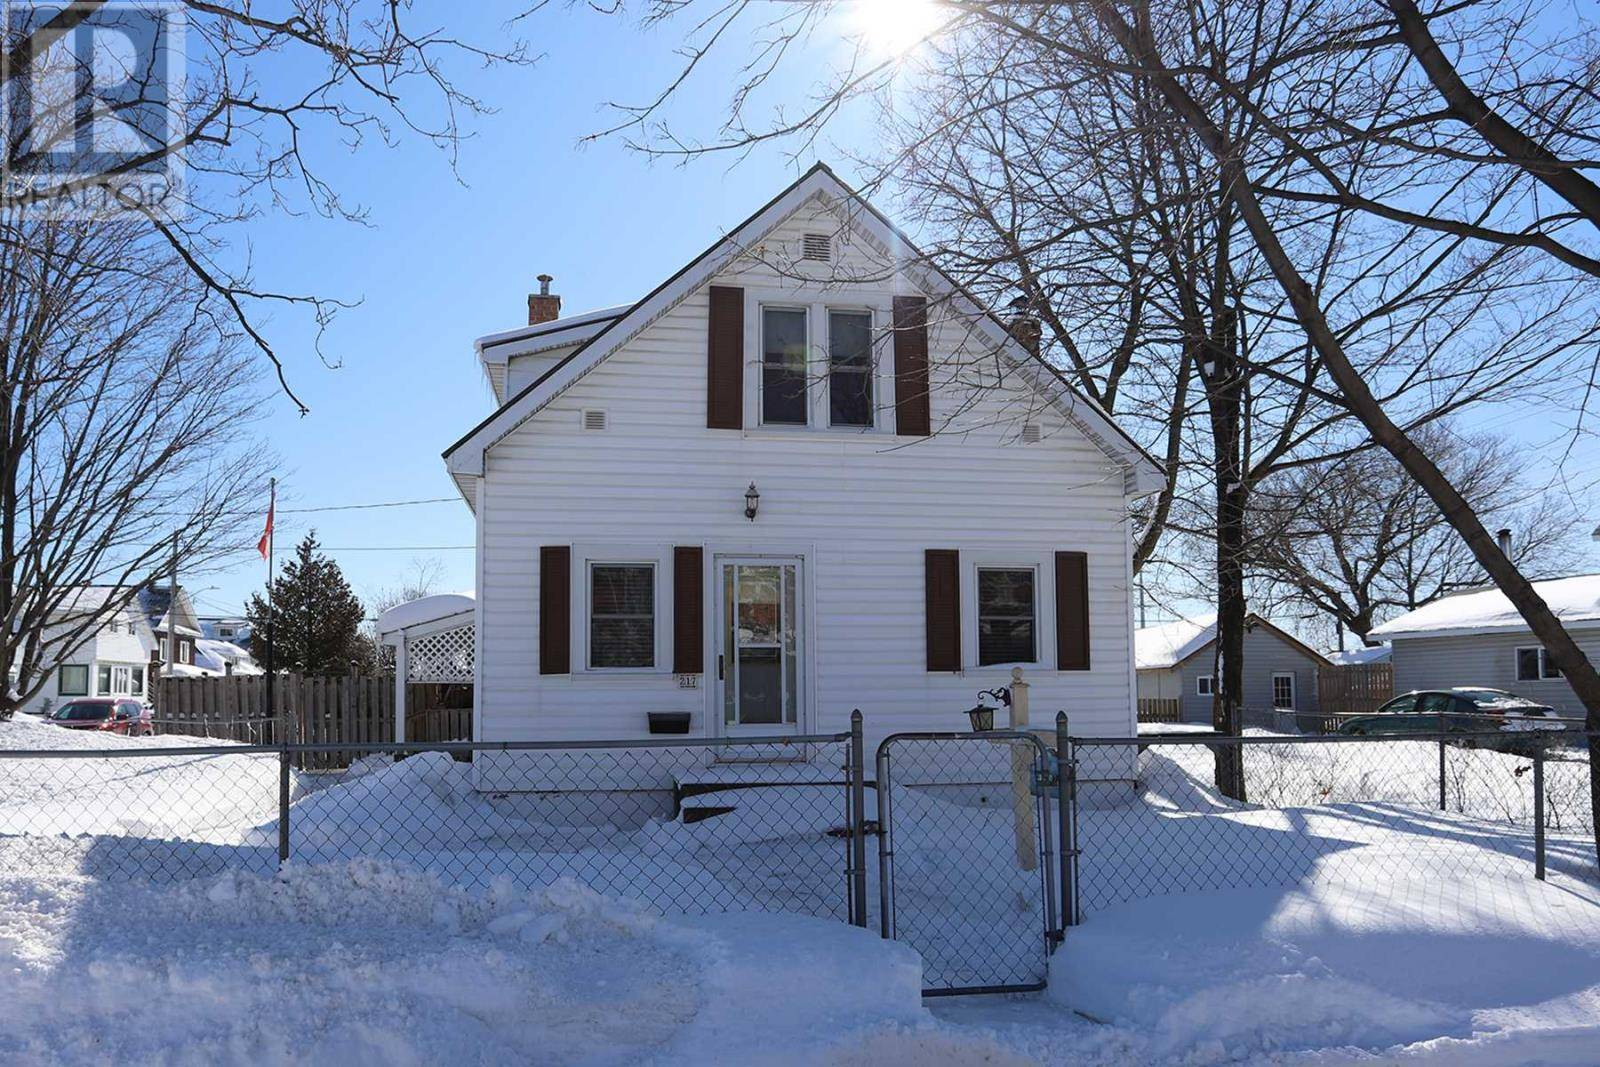 House for sale at 217 St. Georges Ave W Sault Ste. Marie Ontario - MLS: SM128106